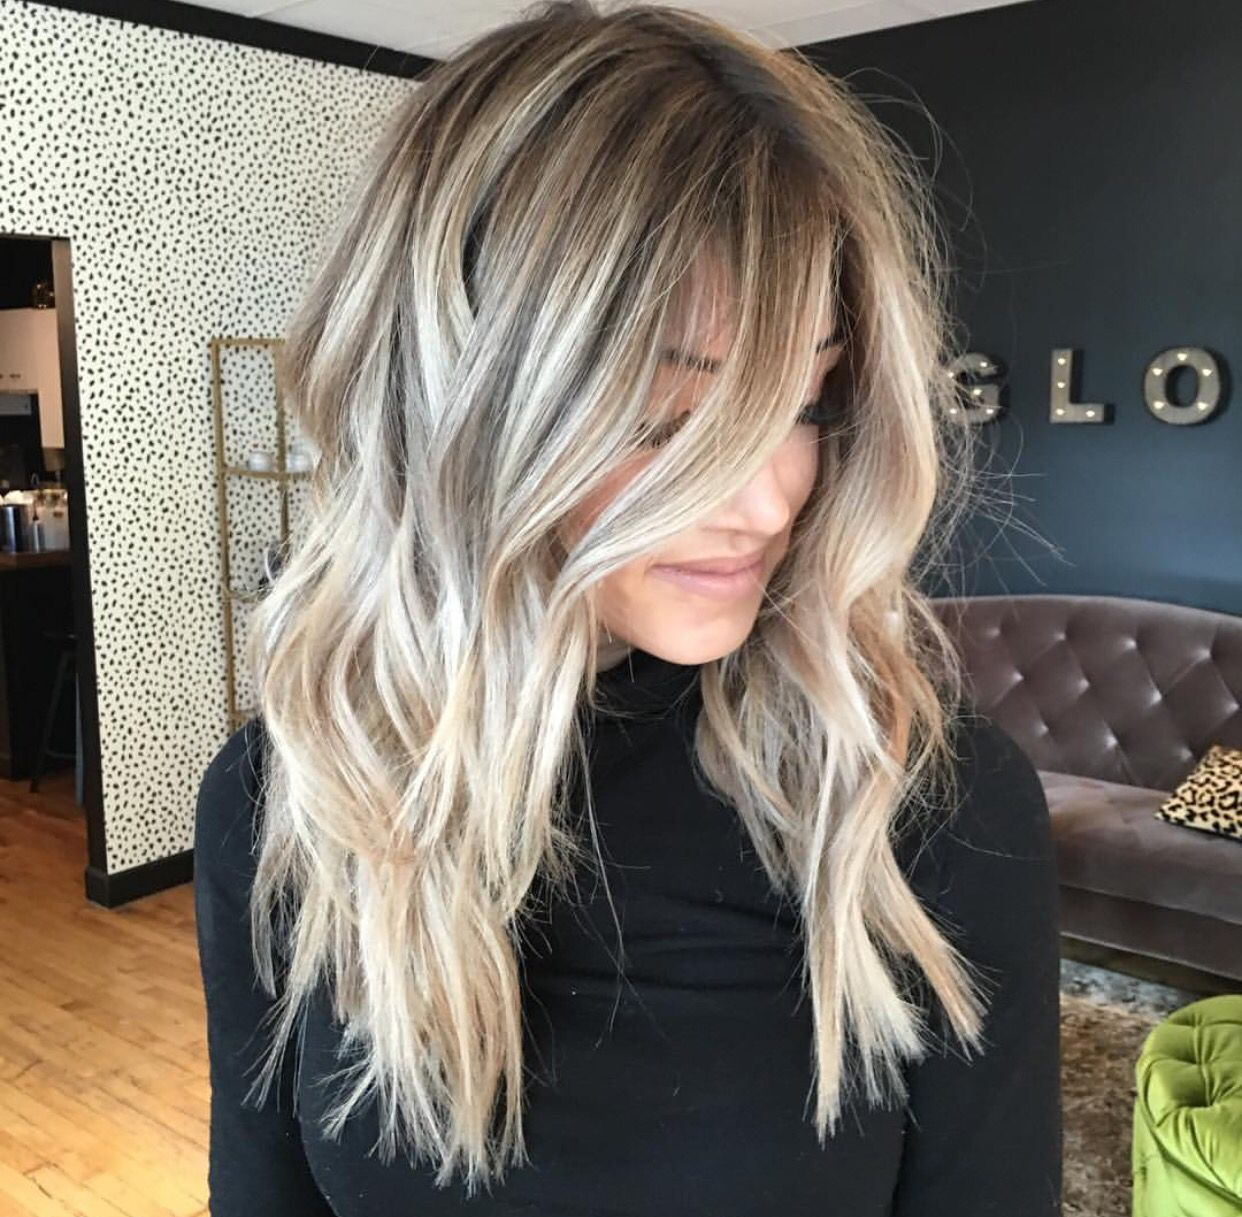 Awesome Ashy High And Low Lights Maybe A Little Darker For Me Hair Short Hairstyles Gunalazisus